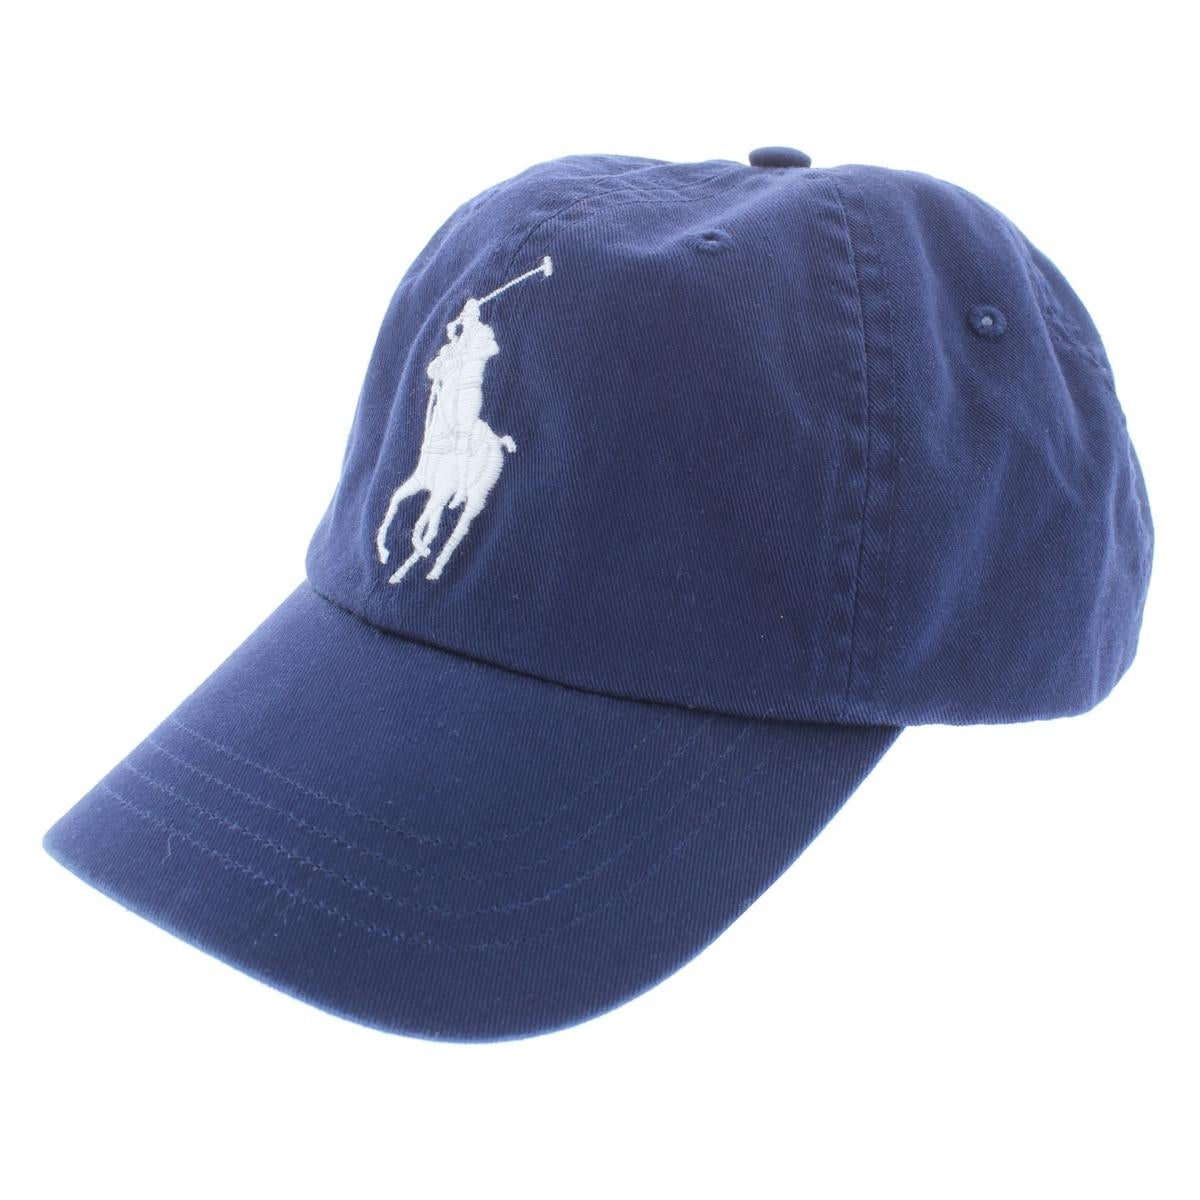 Shop Polo Ralph Lauren Mens Ball Cap Chino Signature - o s - Free Shipping  On Orders Over  45 - Overstock.com - 25696937 eea325f32c4